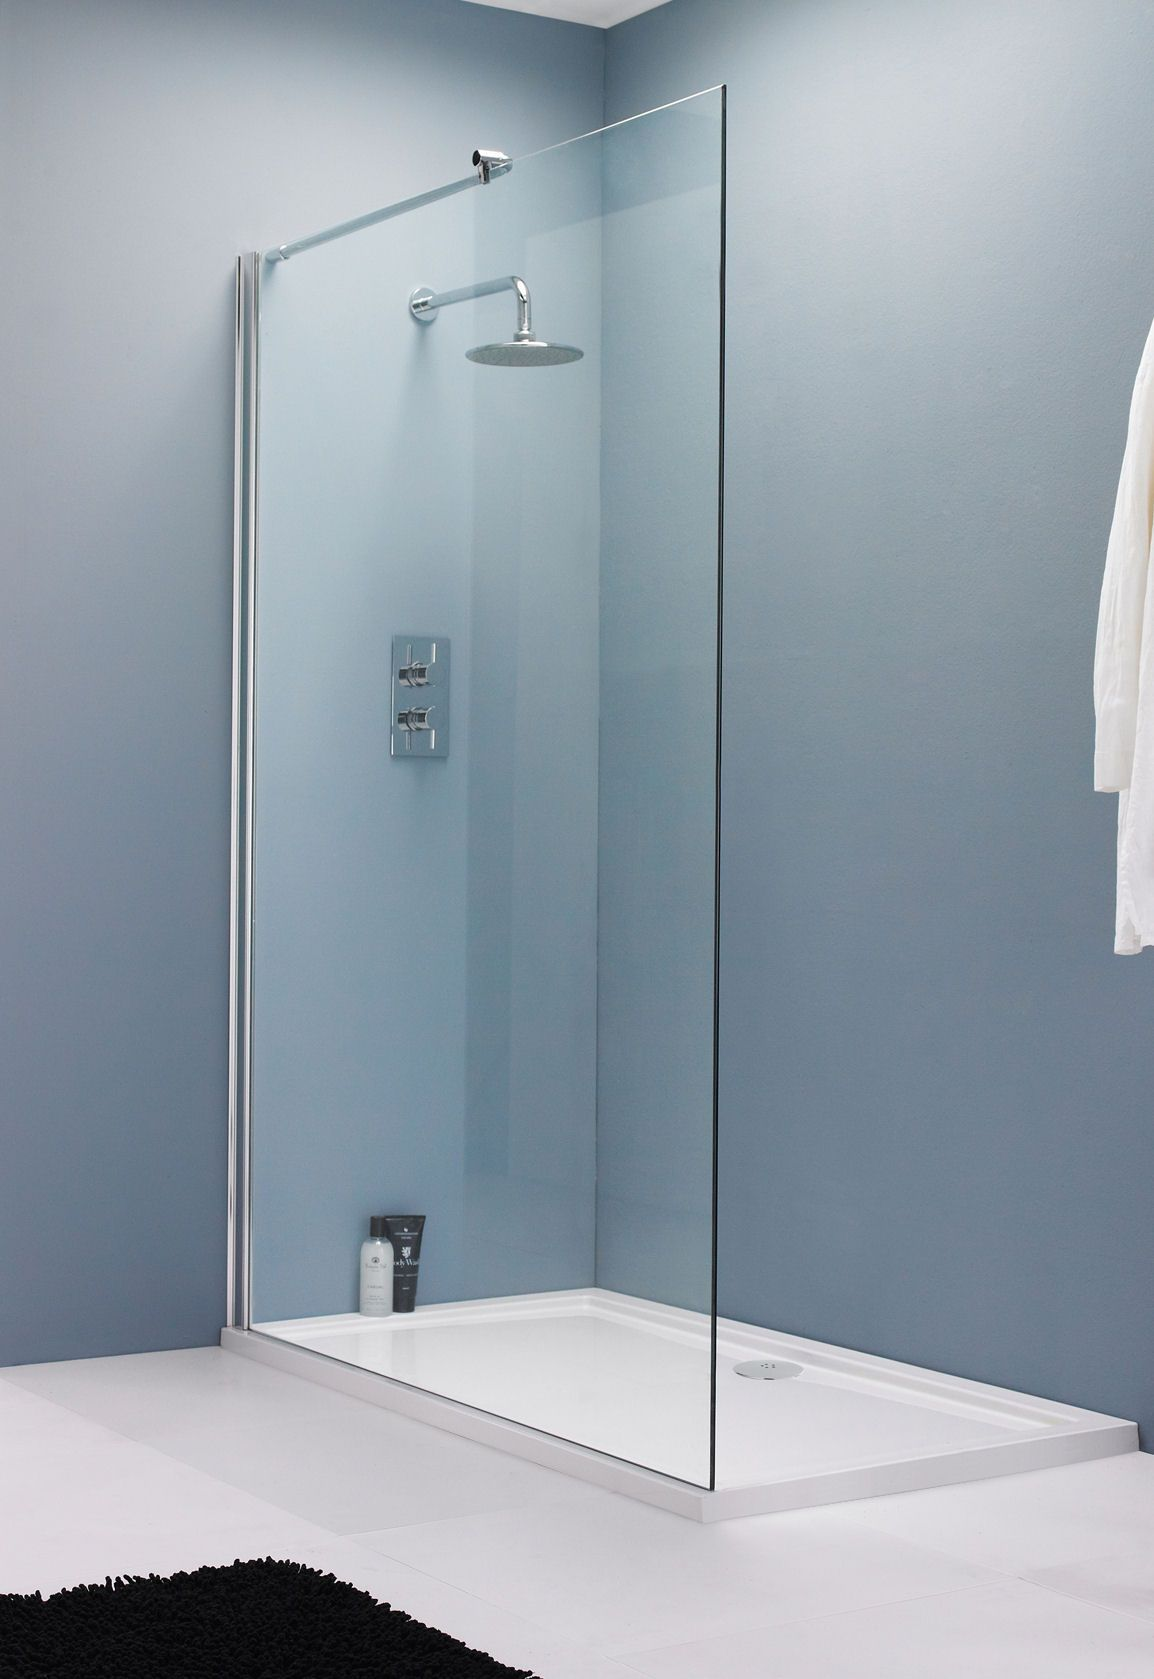 Breathtaking Wet Bathroom Concept Added Gl Shower Divider Panels With Chrome Rain And